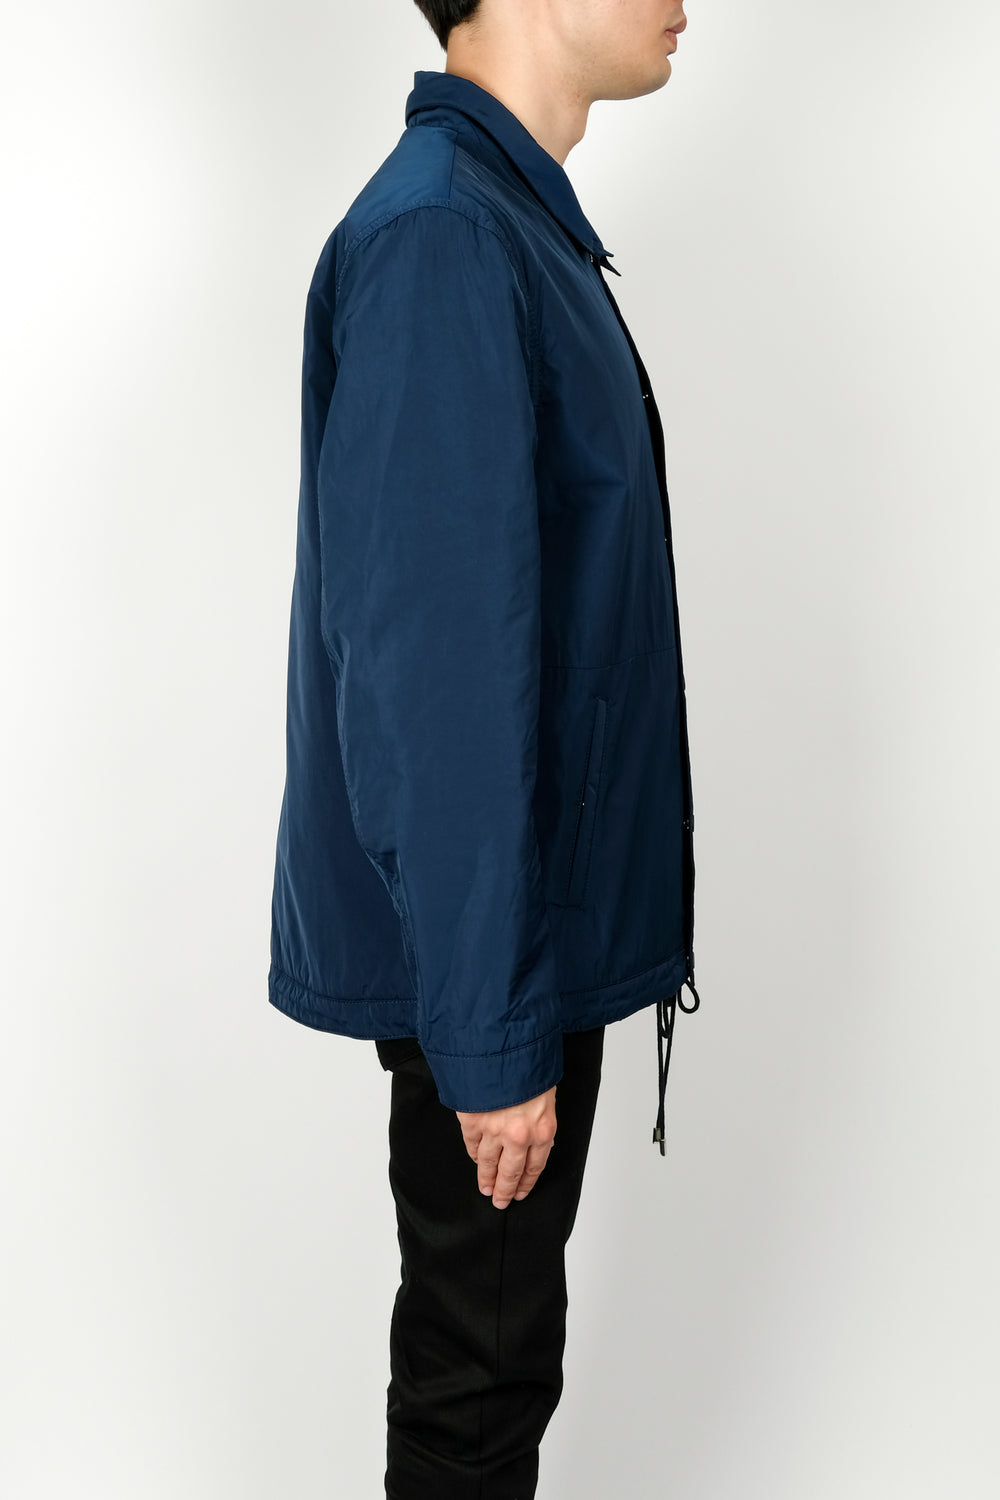 Les Benjamins Habu Jacket In Blue